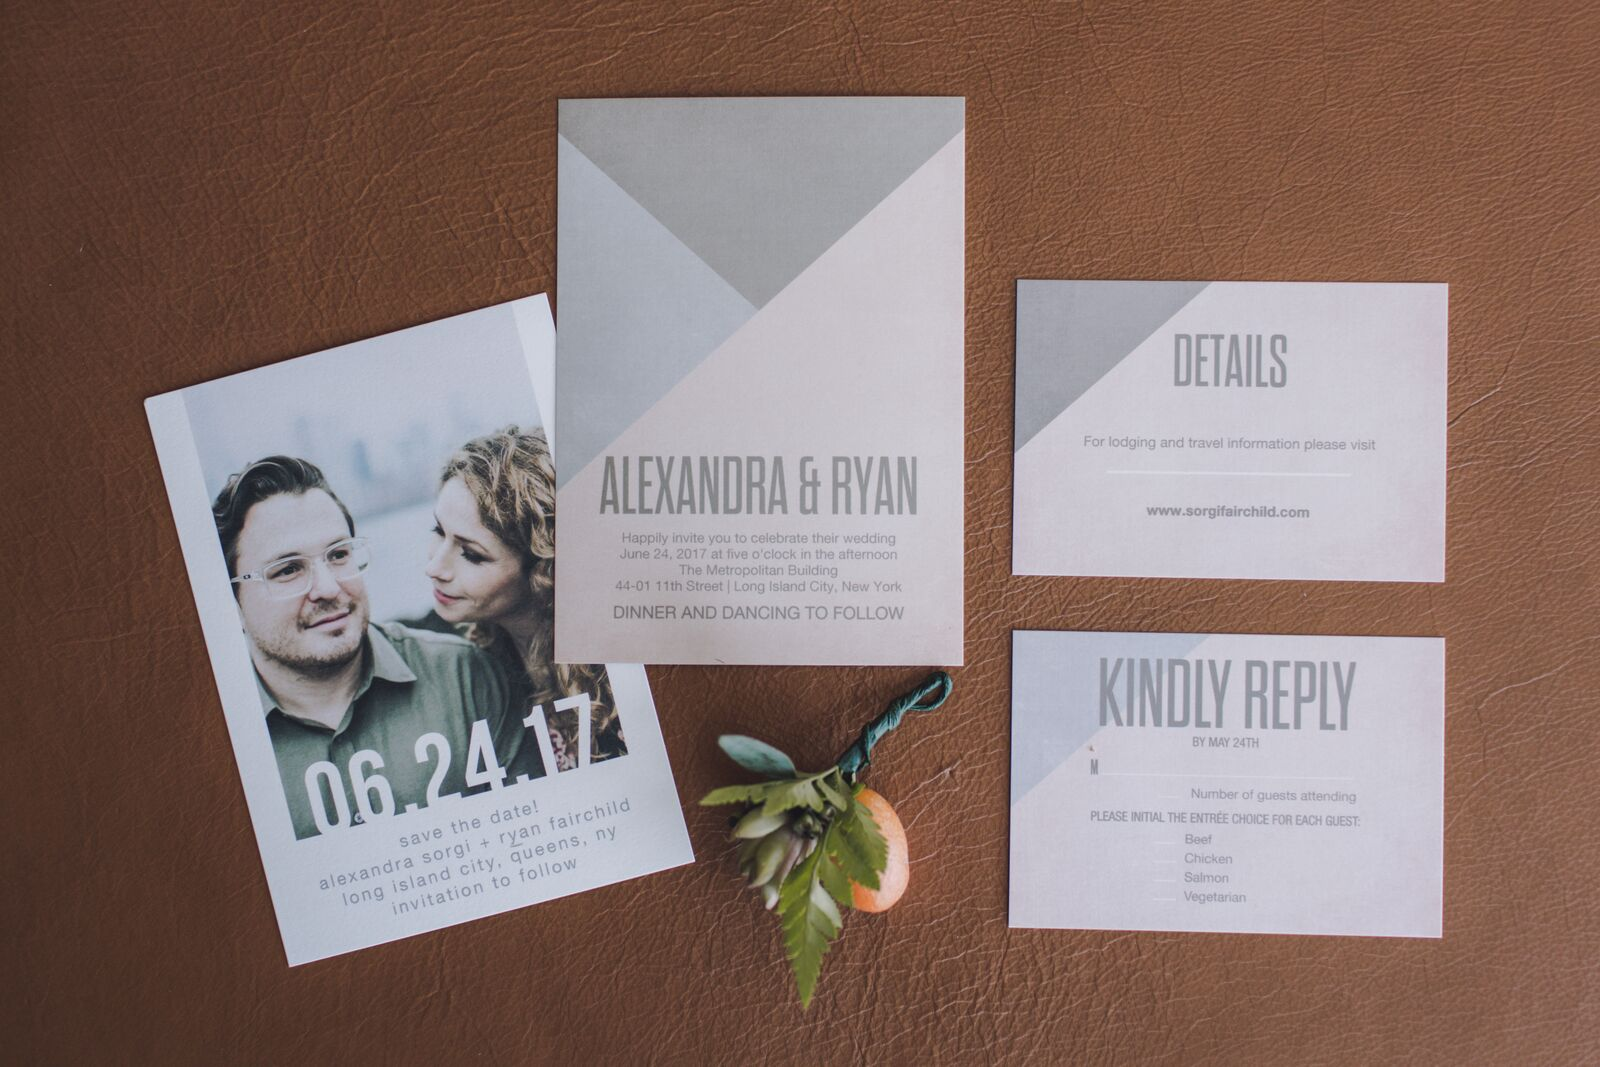 Ryan and Alex Industrial Metropolitan Building Long Island City Bride and Groom Couple Sustainable Eco-friendly wedding celebration invitations